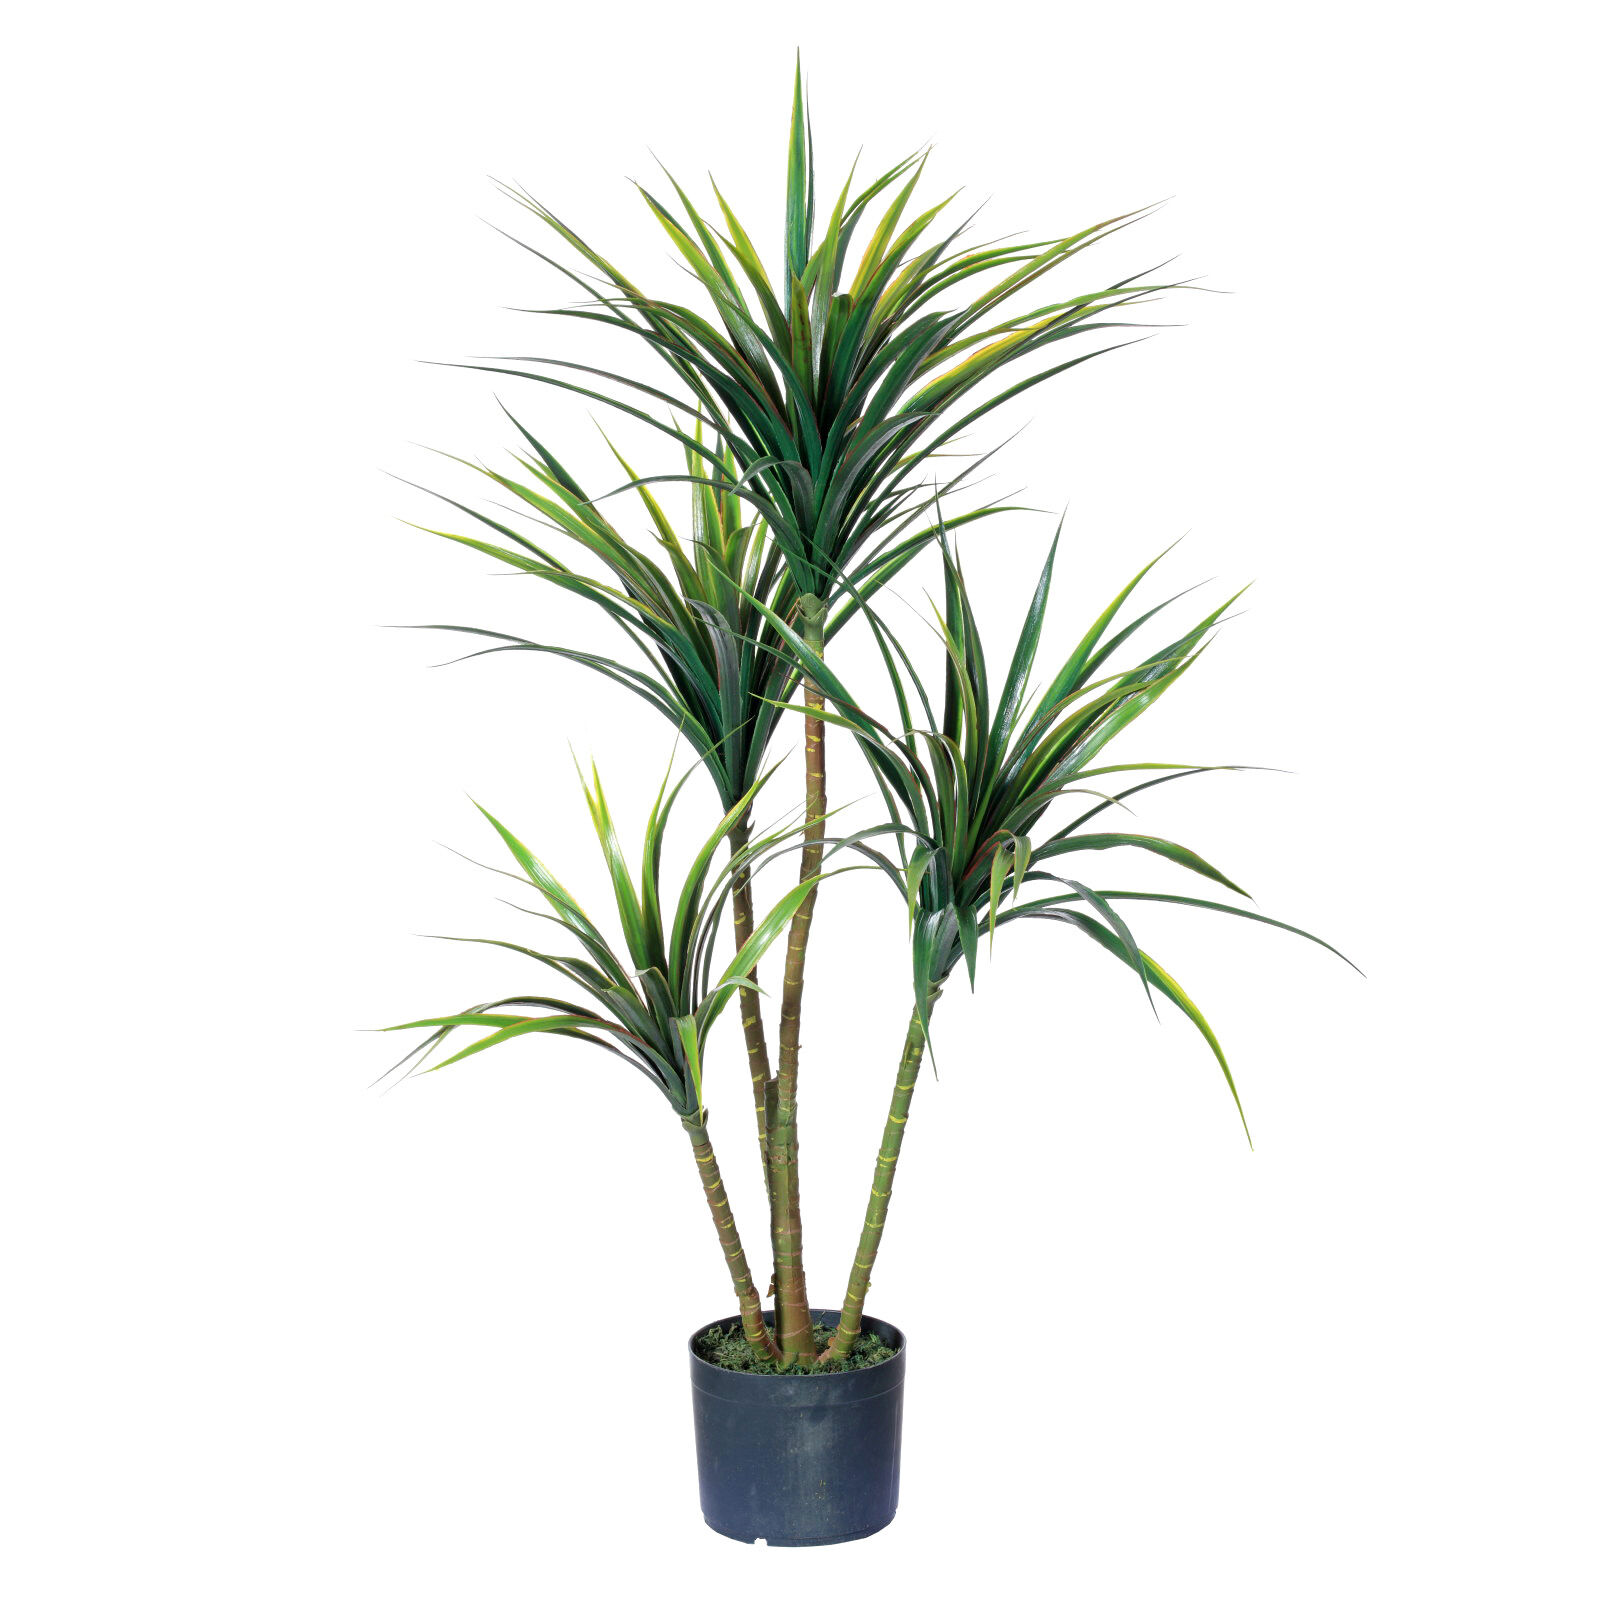 farmhouse glam living room door designs in india yucca plant plastic pot | at home